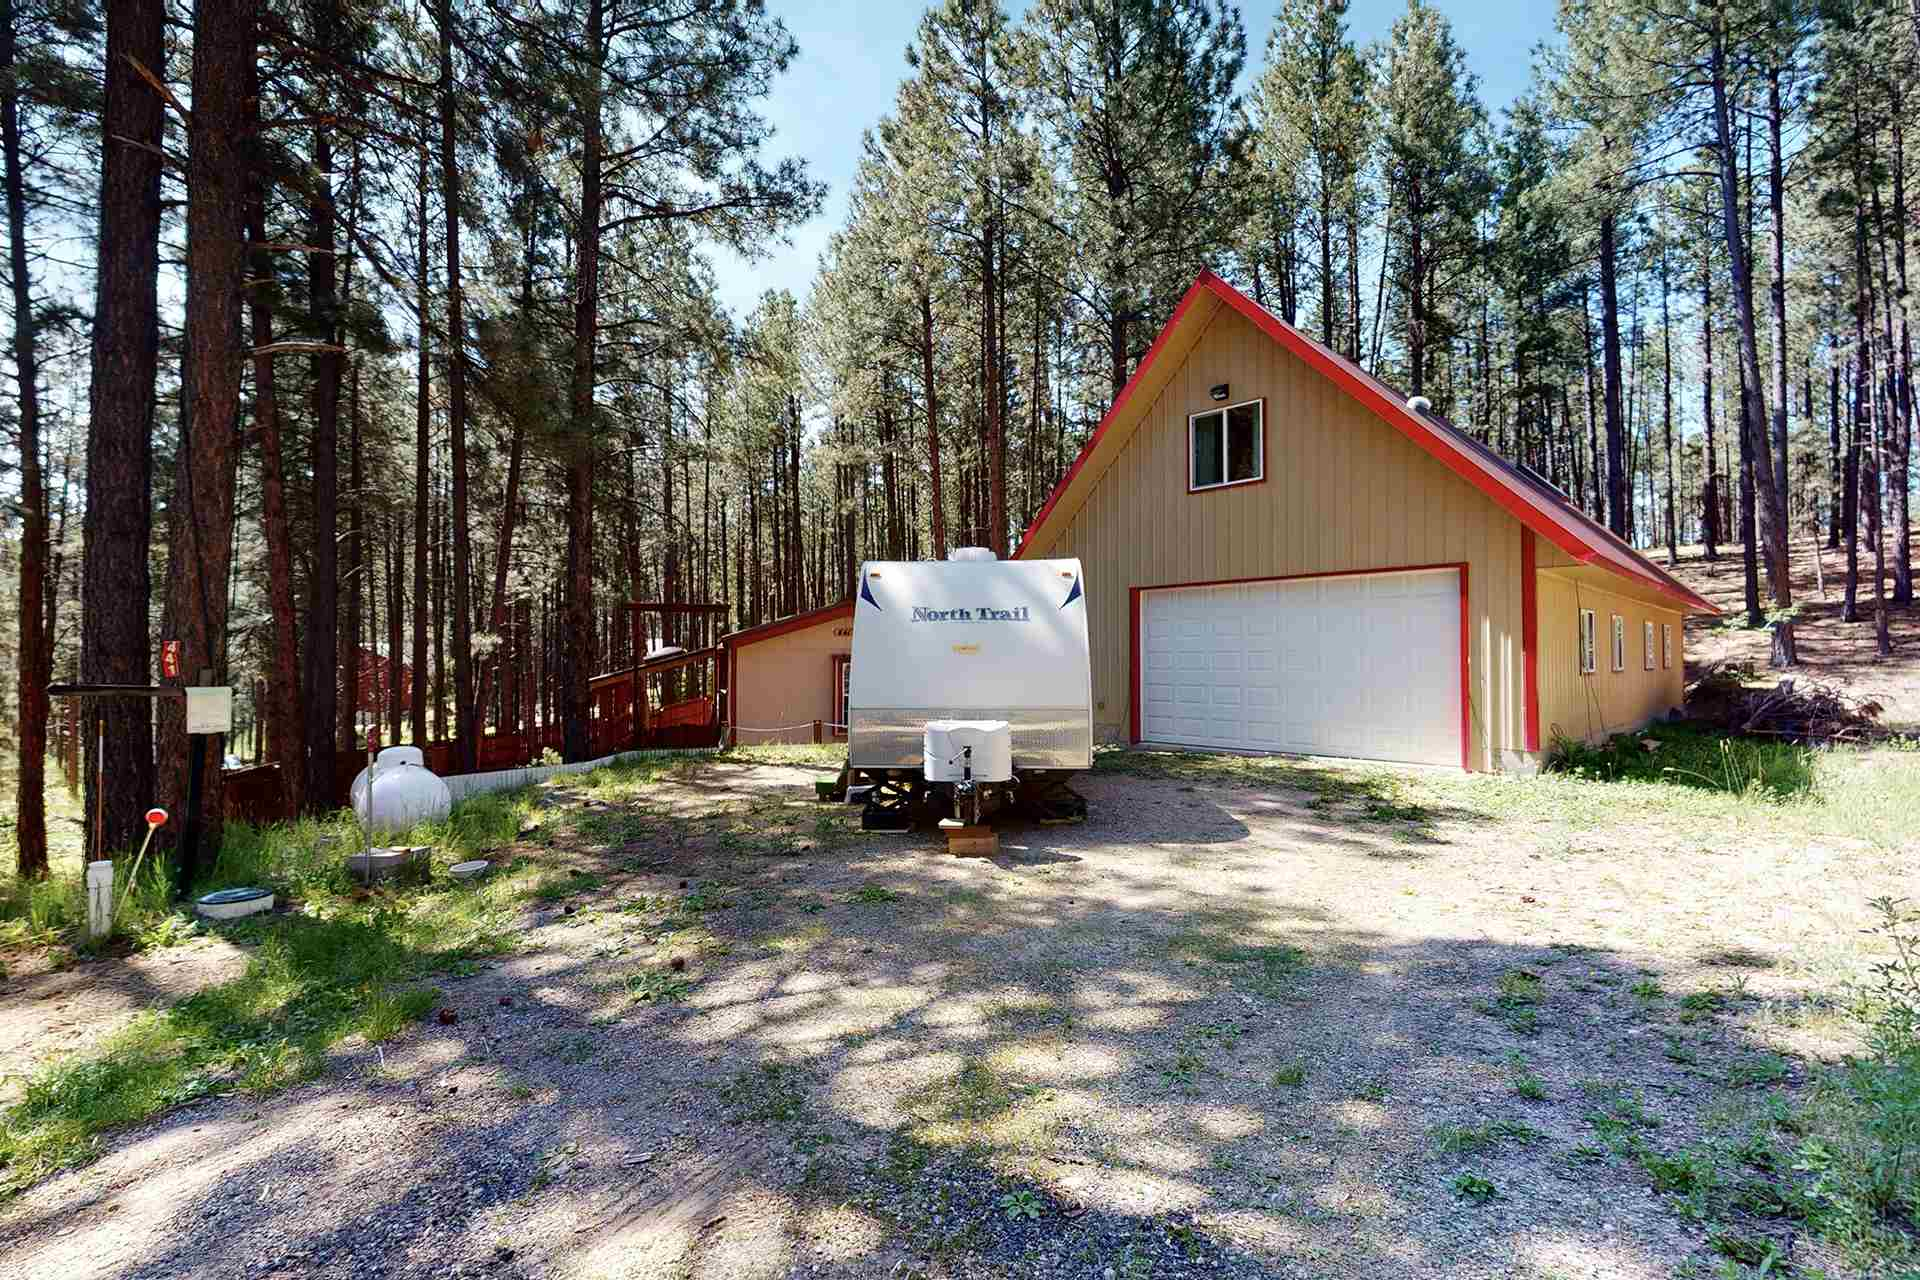 Are you looking for a place that provides serenity yet lots of activities close-by?  Look no further!  This home in Jemez Springs is literally a wildlife Mecca! Right down NM-4 you'll find Elk Viewing and Las Conchas Trail for hiking and viewing wildflower habitat!  Also right down NM 4 is the Valles Caldera National Preserve, a ski-walking area and the Bandelier National Monument. Now get ready to relax in your remodeled manufactured home sitting on a 1 acre lot.  Relax on the front Trex porch and enjoy the peacefulness.  Property Overview - Nicely remodeled manufactured home on a permanent foundation occupying 1 acre. New flooring. New kitchen cabinets and counter tops. Rustic tongue and groove wood in master bedroom. Master bath with double-headed shower and Jacuzzi bathtub New carpet in living area. Front and back covered Trex porches with skylights in front porch. 6ft cedar fenced yard. 4-bay 26 x 50 foot finished dream garage w/ versatile space on second floor for studio/office w/private balcony. Garage is plumbed, no winterization required, wet space is heated. Front and rear 10 x 16 roll-up garage doors (front is electric). Generator and fireplace in master bedroom do not convey.  Matterport Virtual Tour available under the photos section of the MLS.  Information on the HOA for Sierra Los Pinos/CCR's can be review at the following website: http://slppoa.org/www/policies